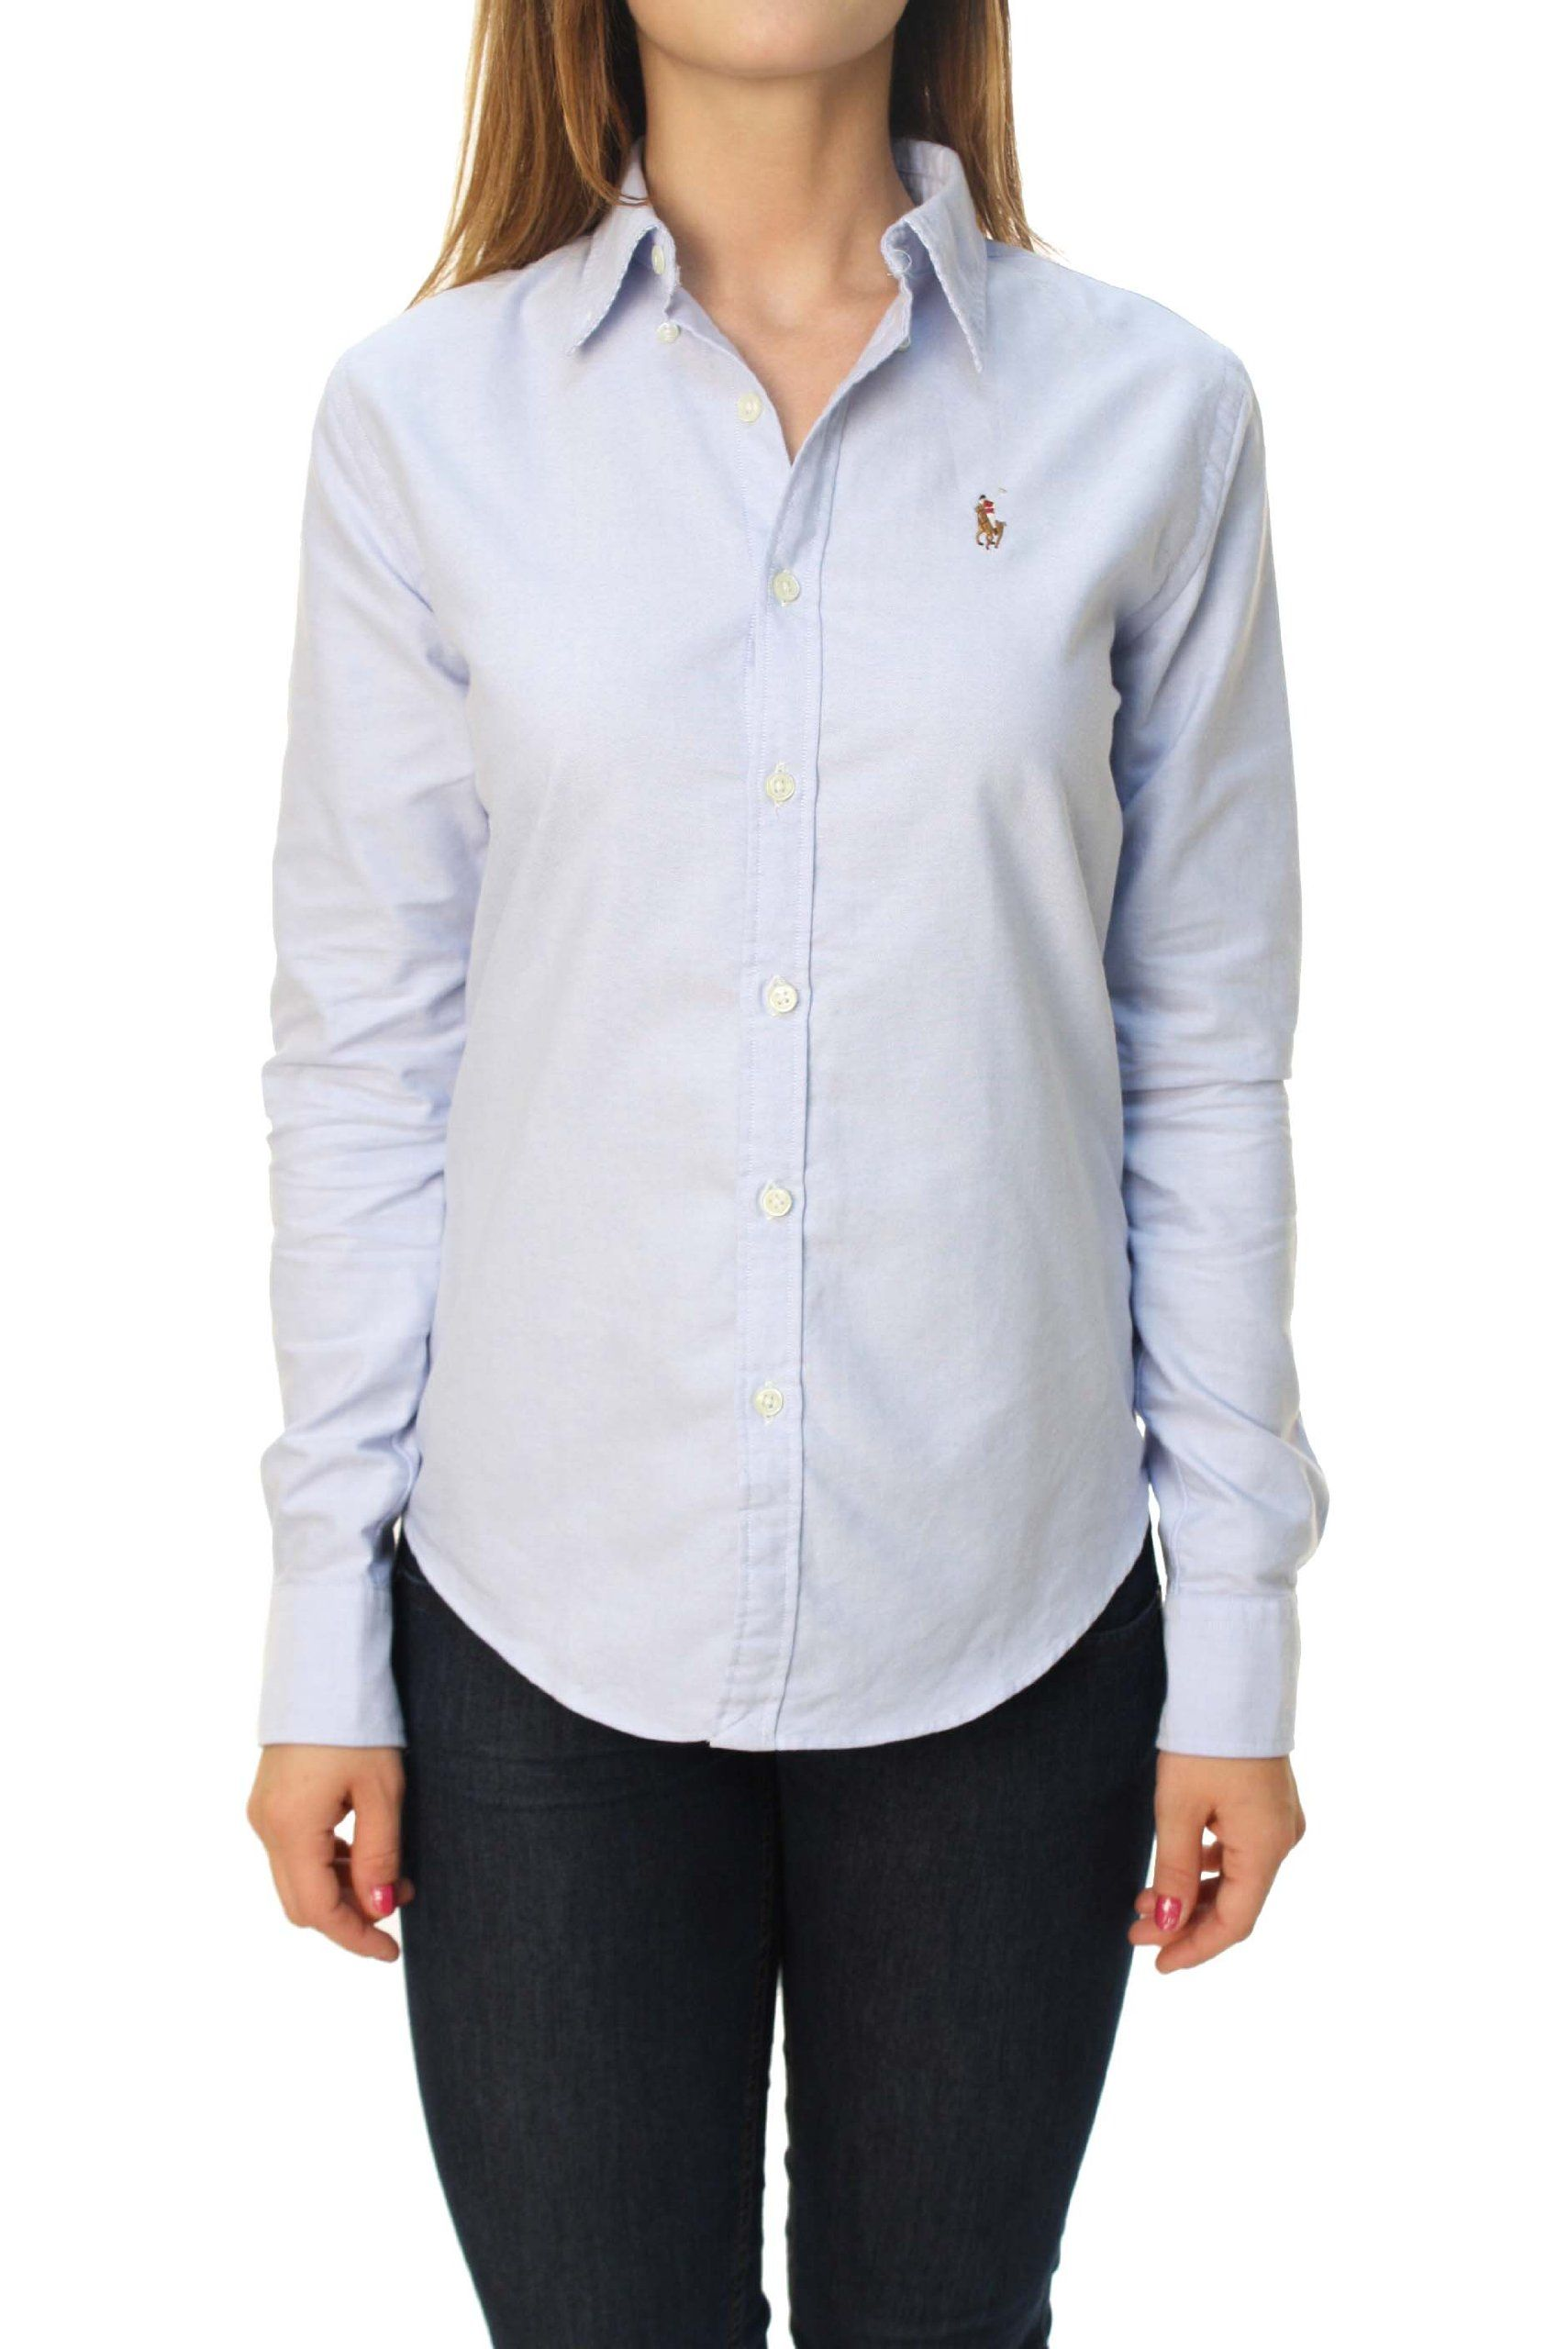 Fitted White Button Down Shirt Women's